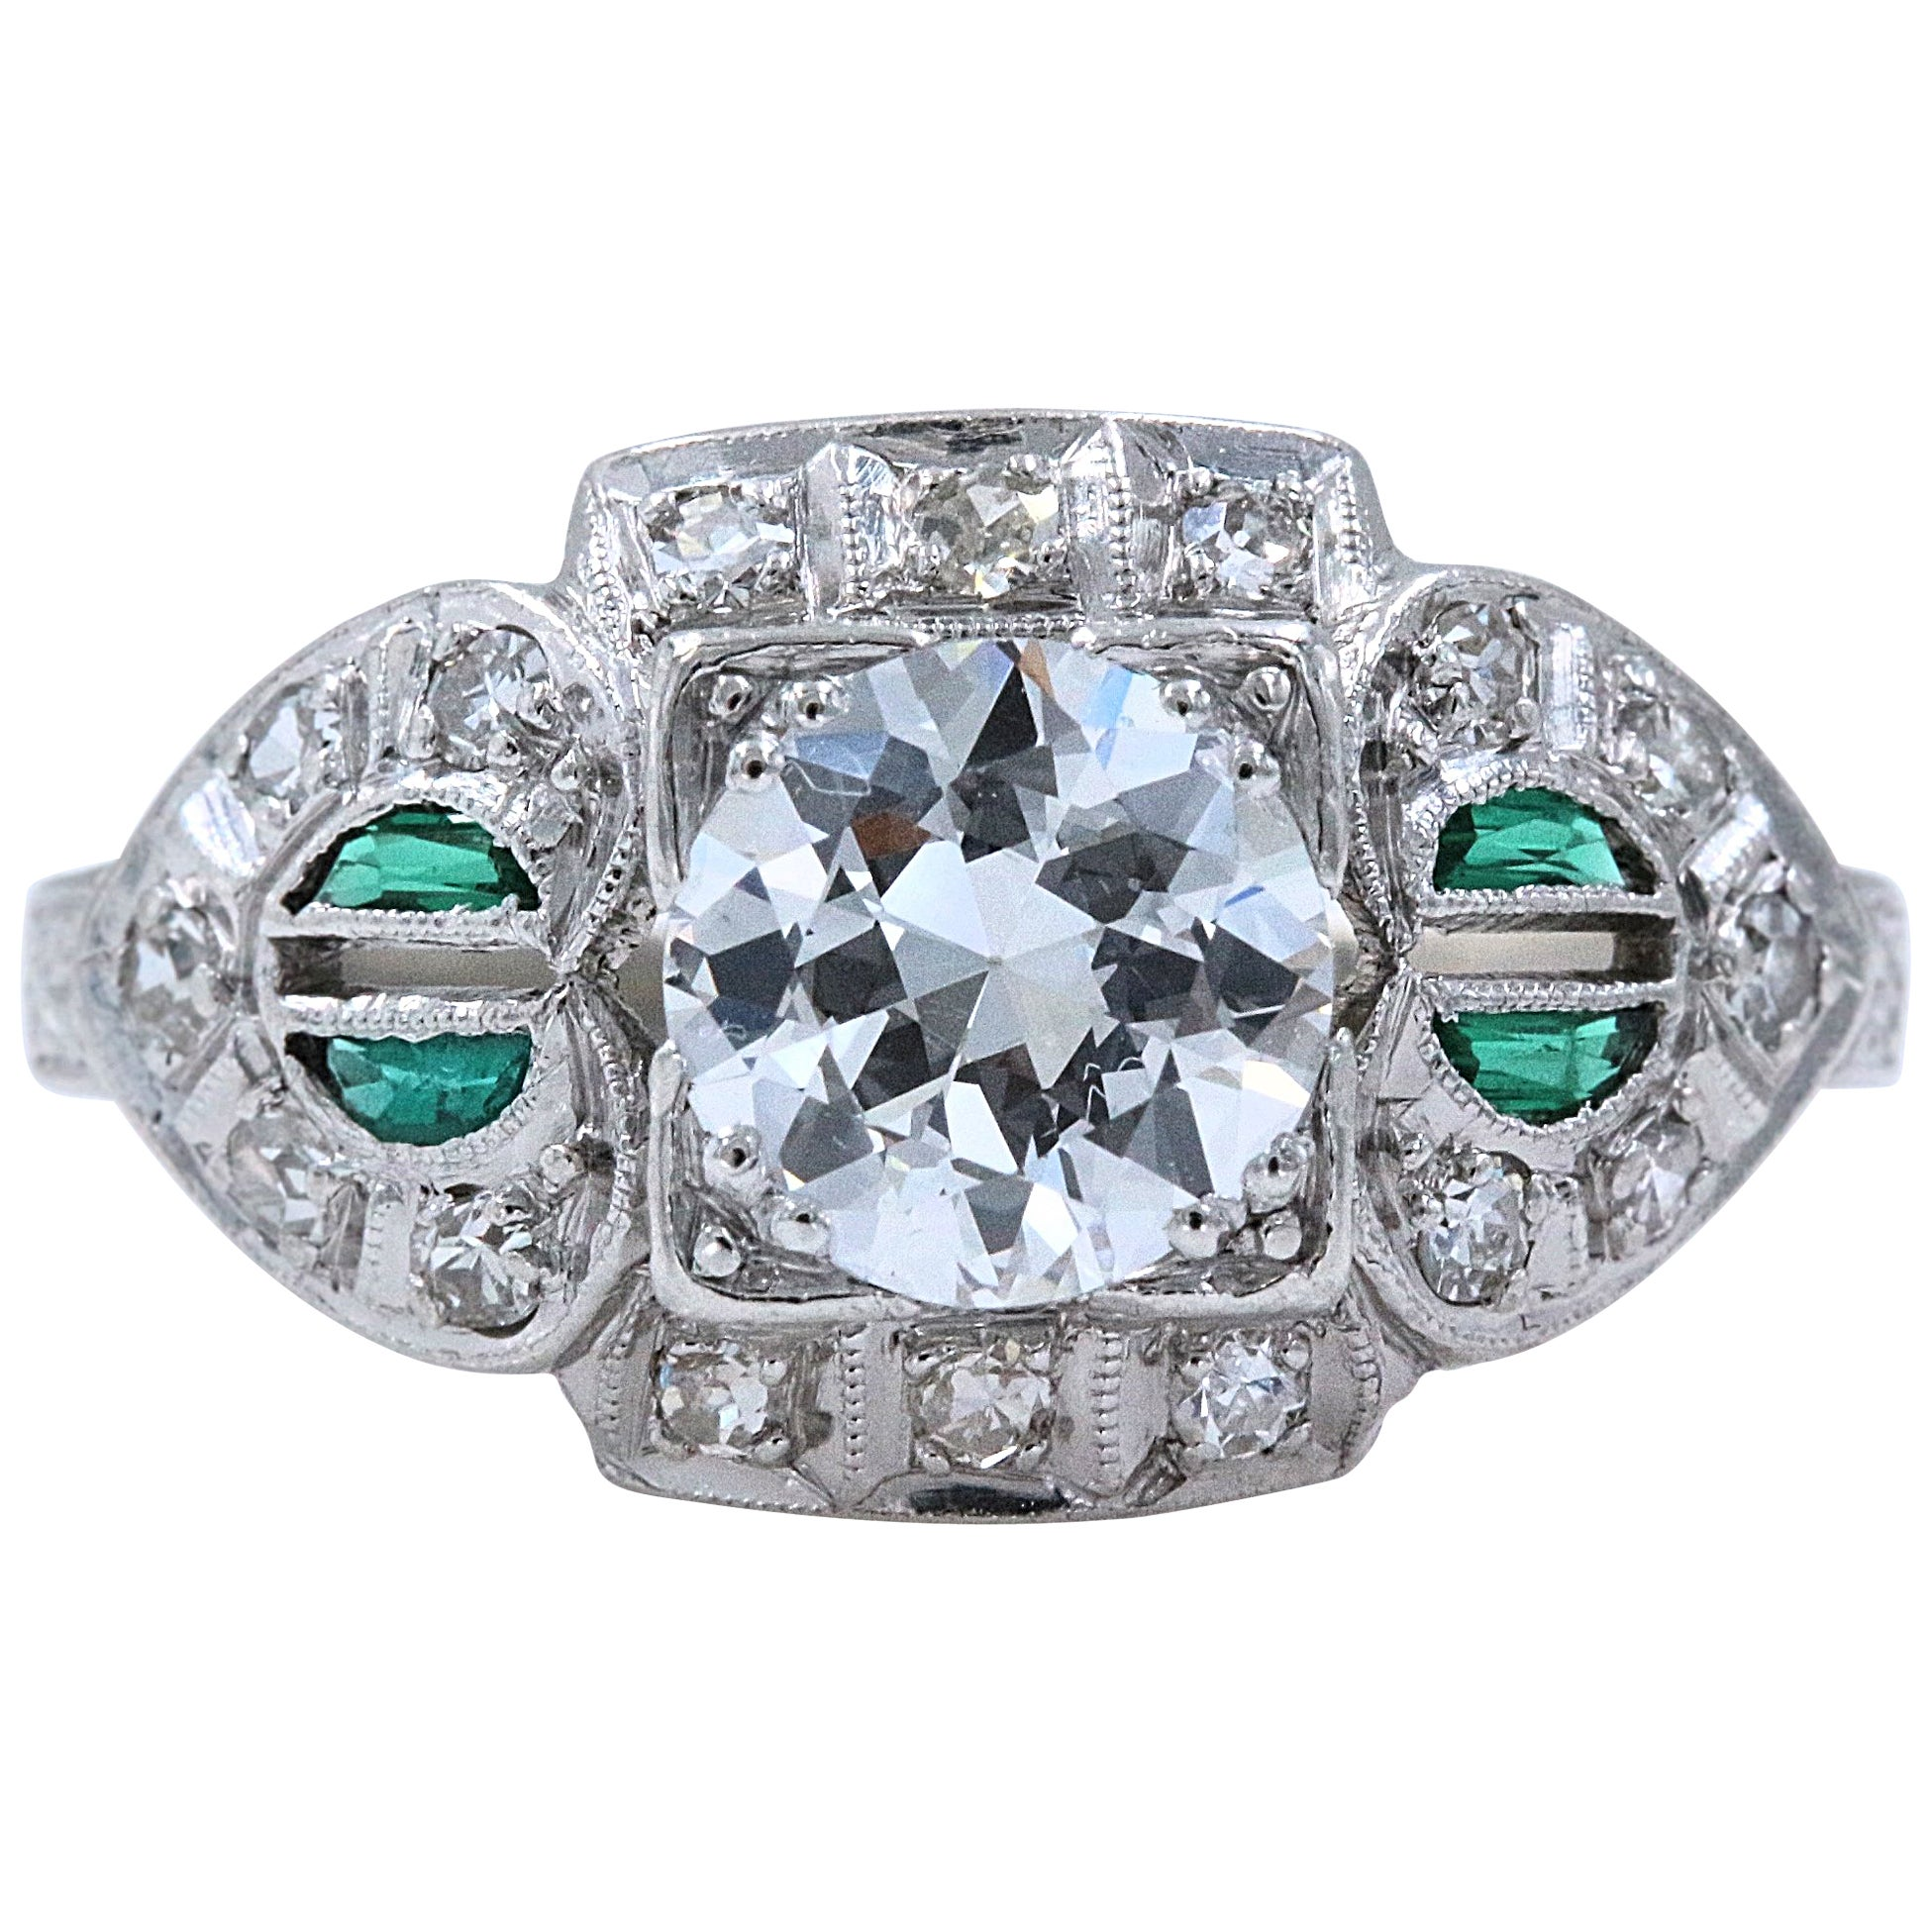 Antique Diamond and Emerald Ring Old European Cuts 1.50 Carat